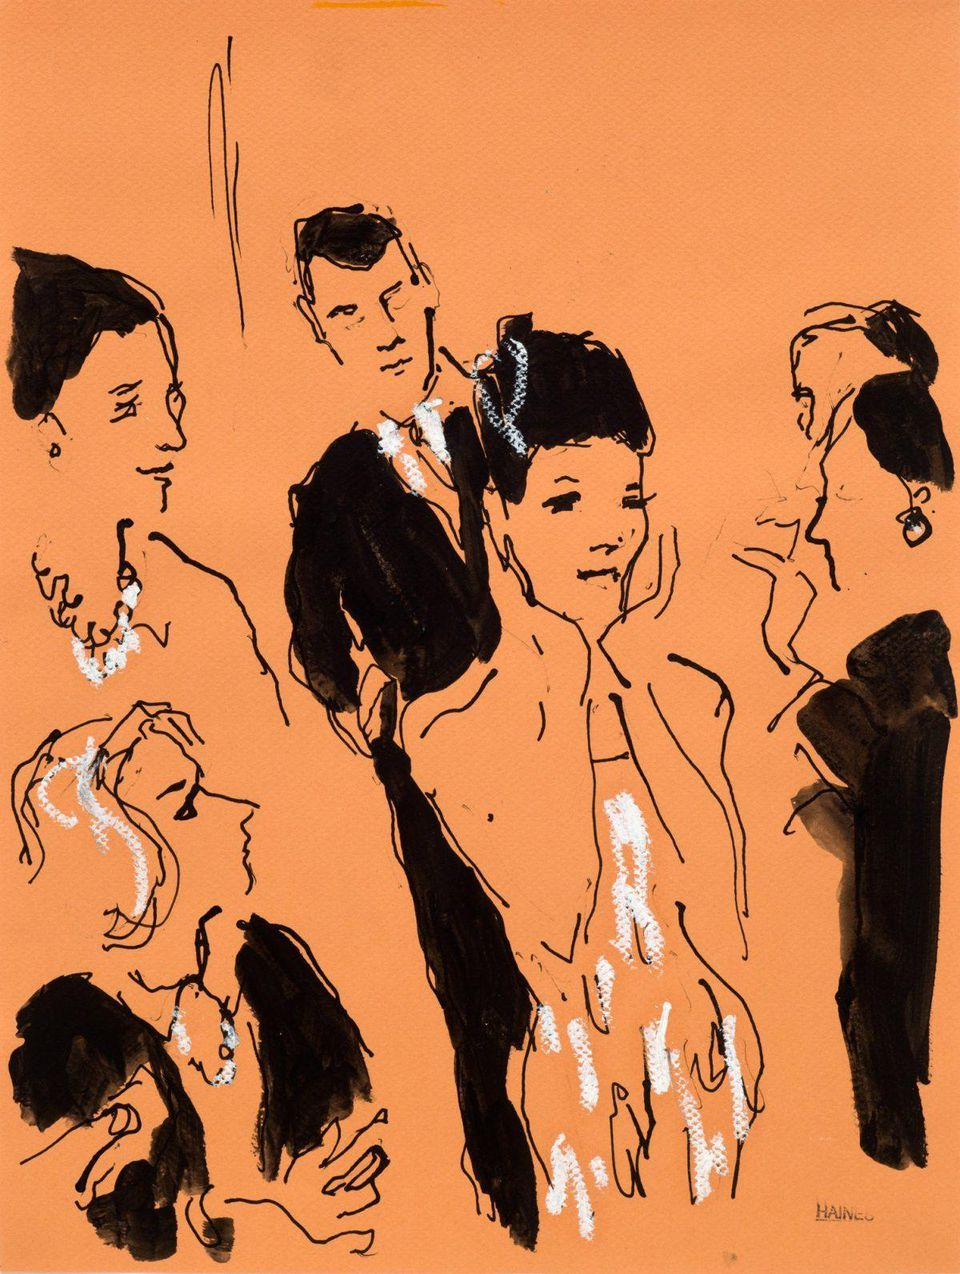 Richard Haines On Sketching The Catwalk